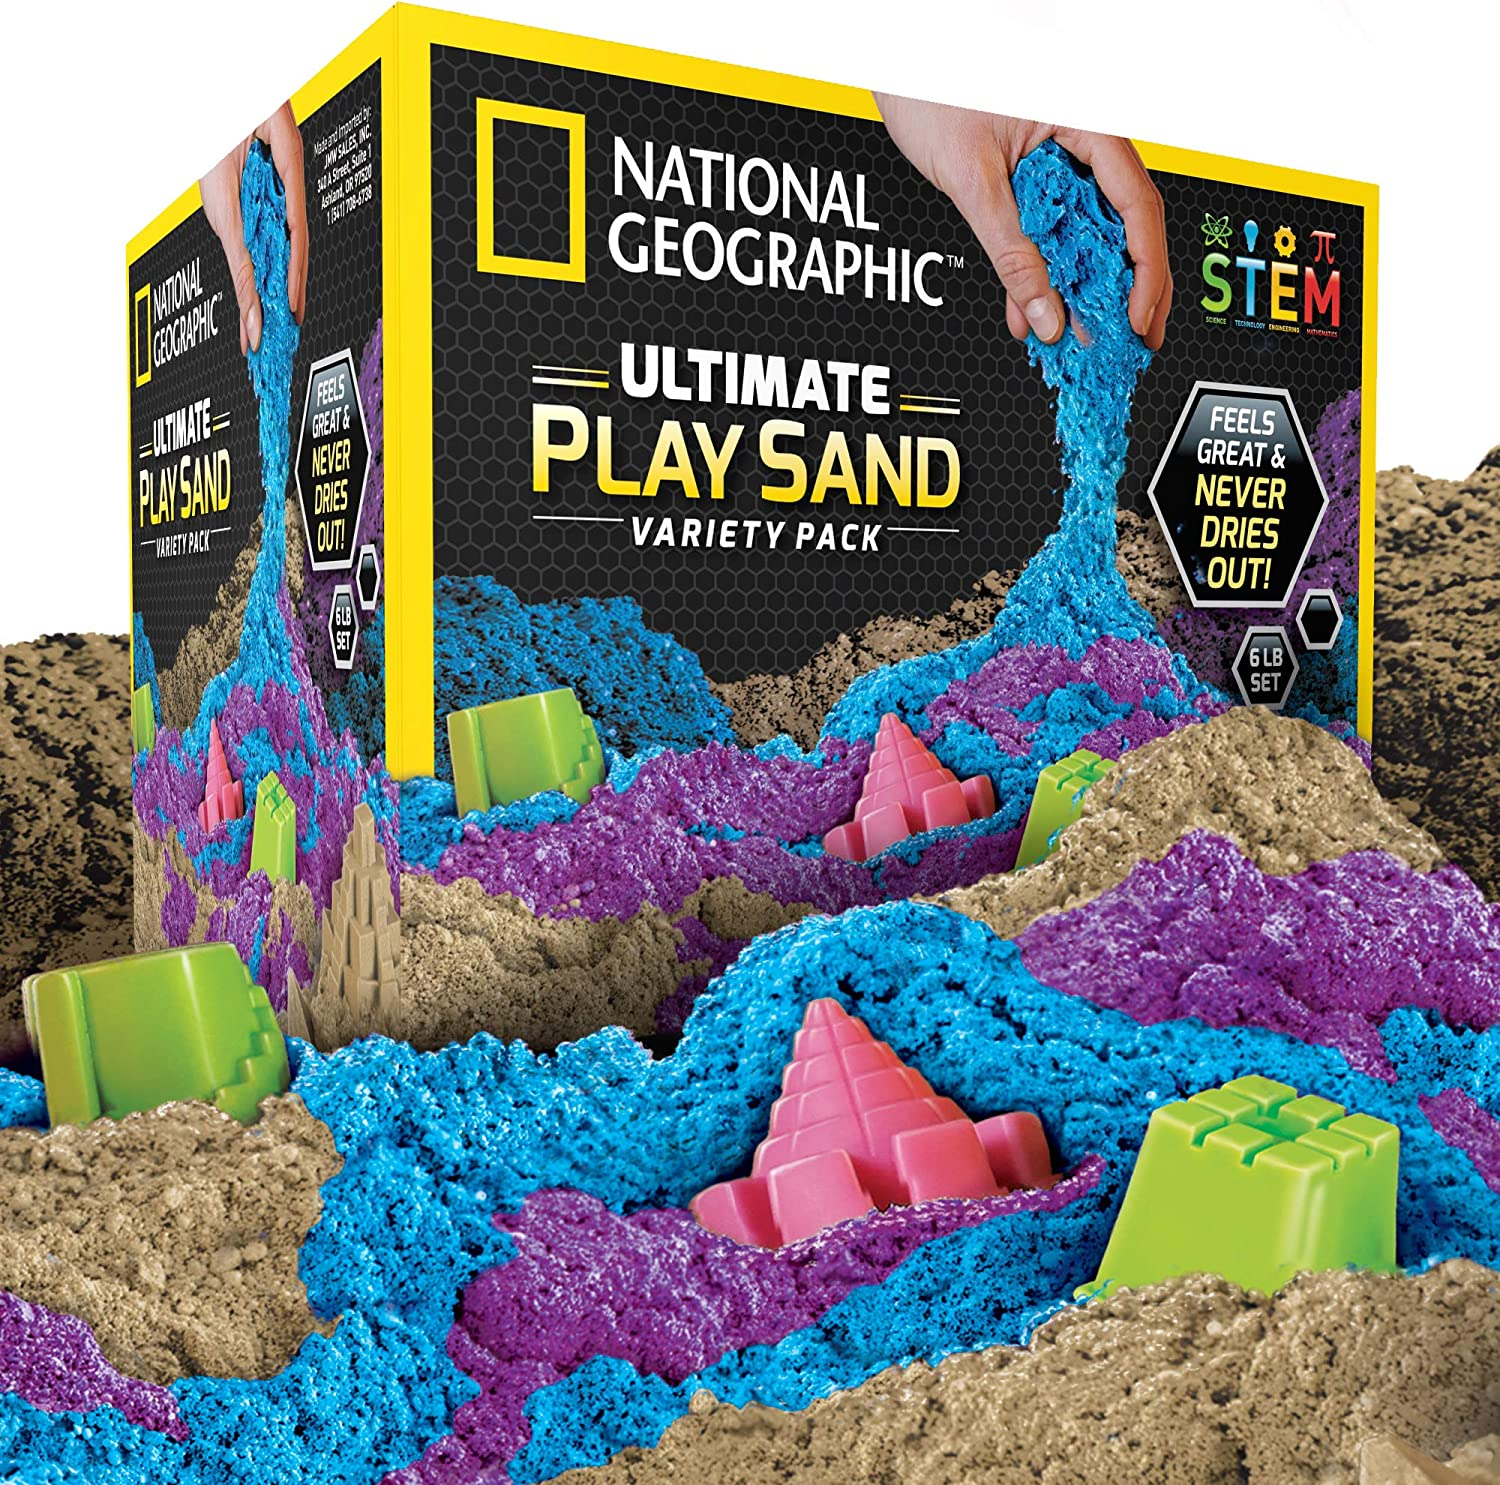 NATIONAL GEOGRAPHIC Play Sand Combo Pack - 2 LBS each of Blue, Purple and Natural Sand with Castle Molds - A Kinetic Sensory Activity